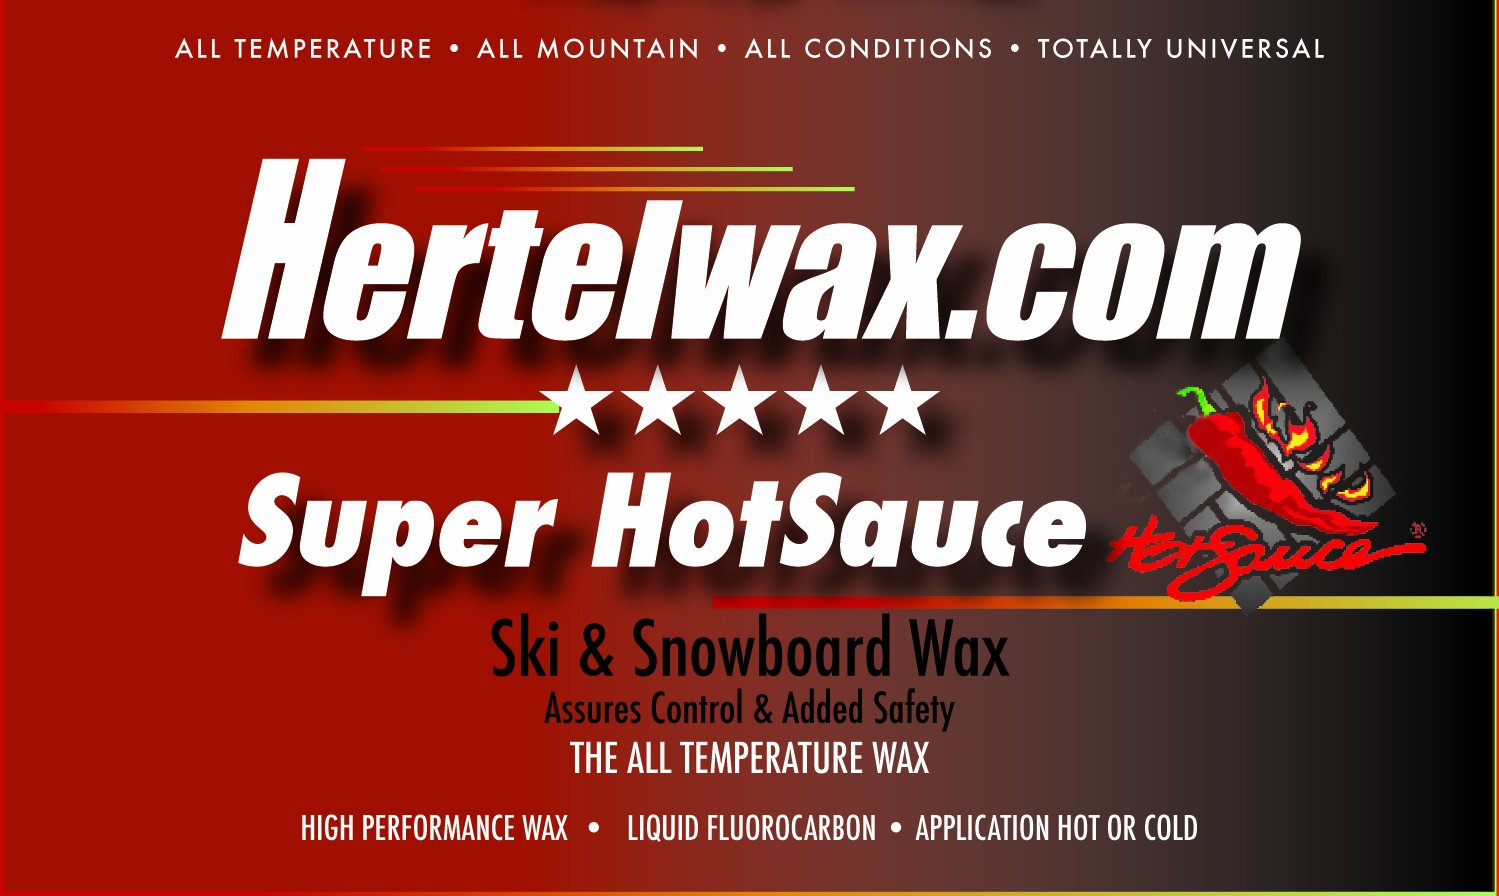 Amazon super hotsauce rub on or apply hot all temperature amazon super hotsauce rub on or apply hot all temperature skisnowboard wax 340194g 12 oz amazing amount of control in all temperatures sports nvjuhfo Gallery